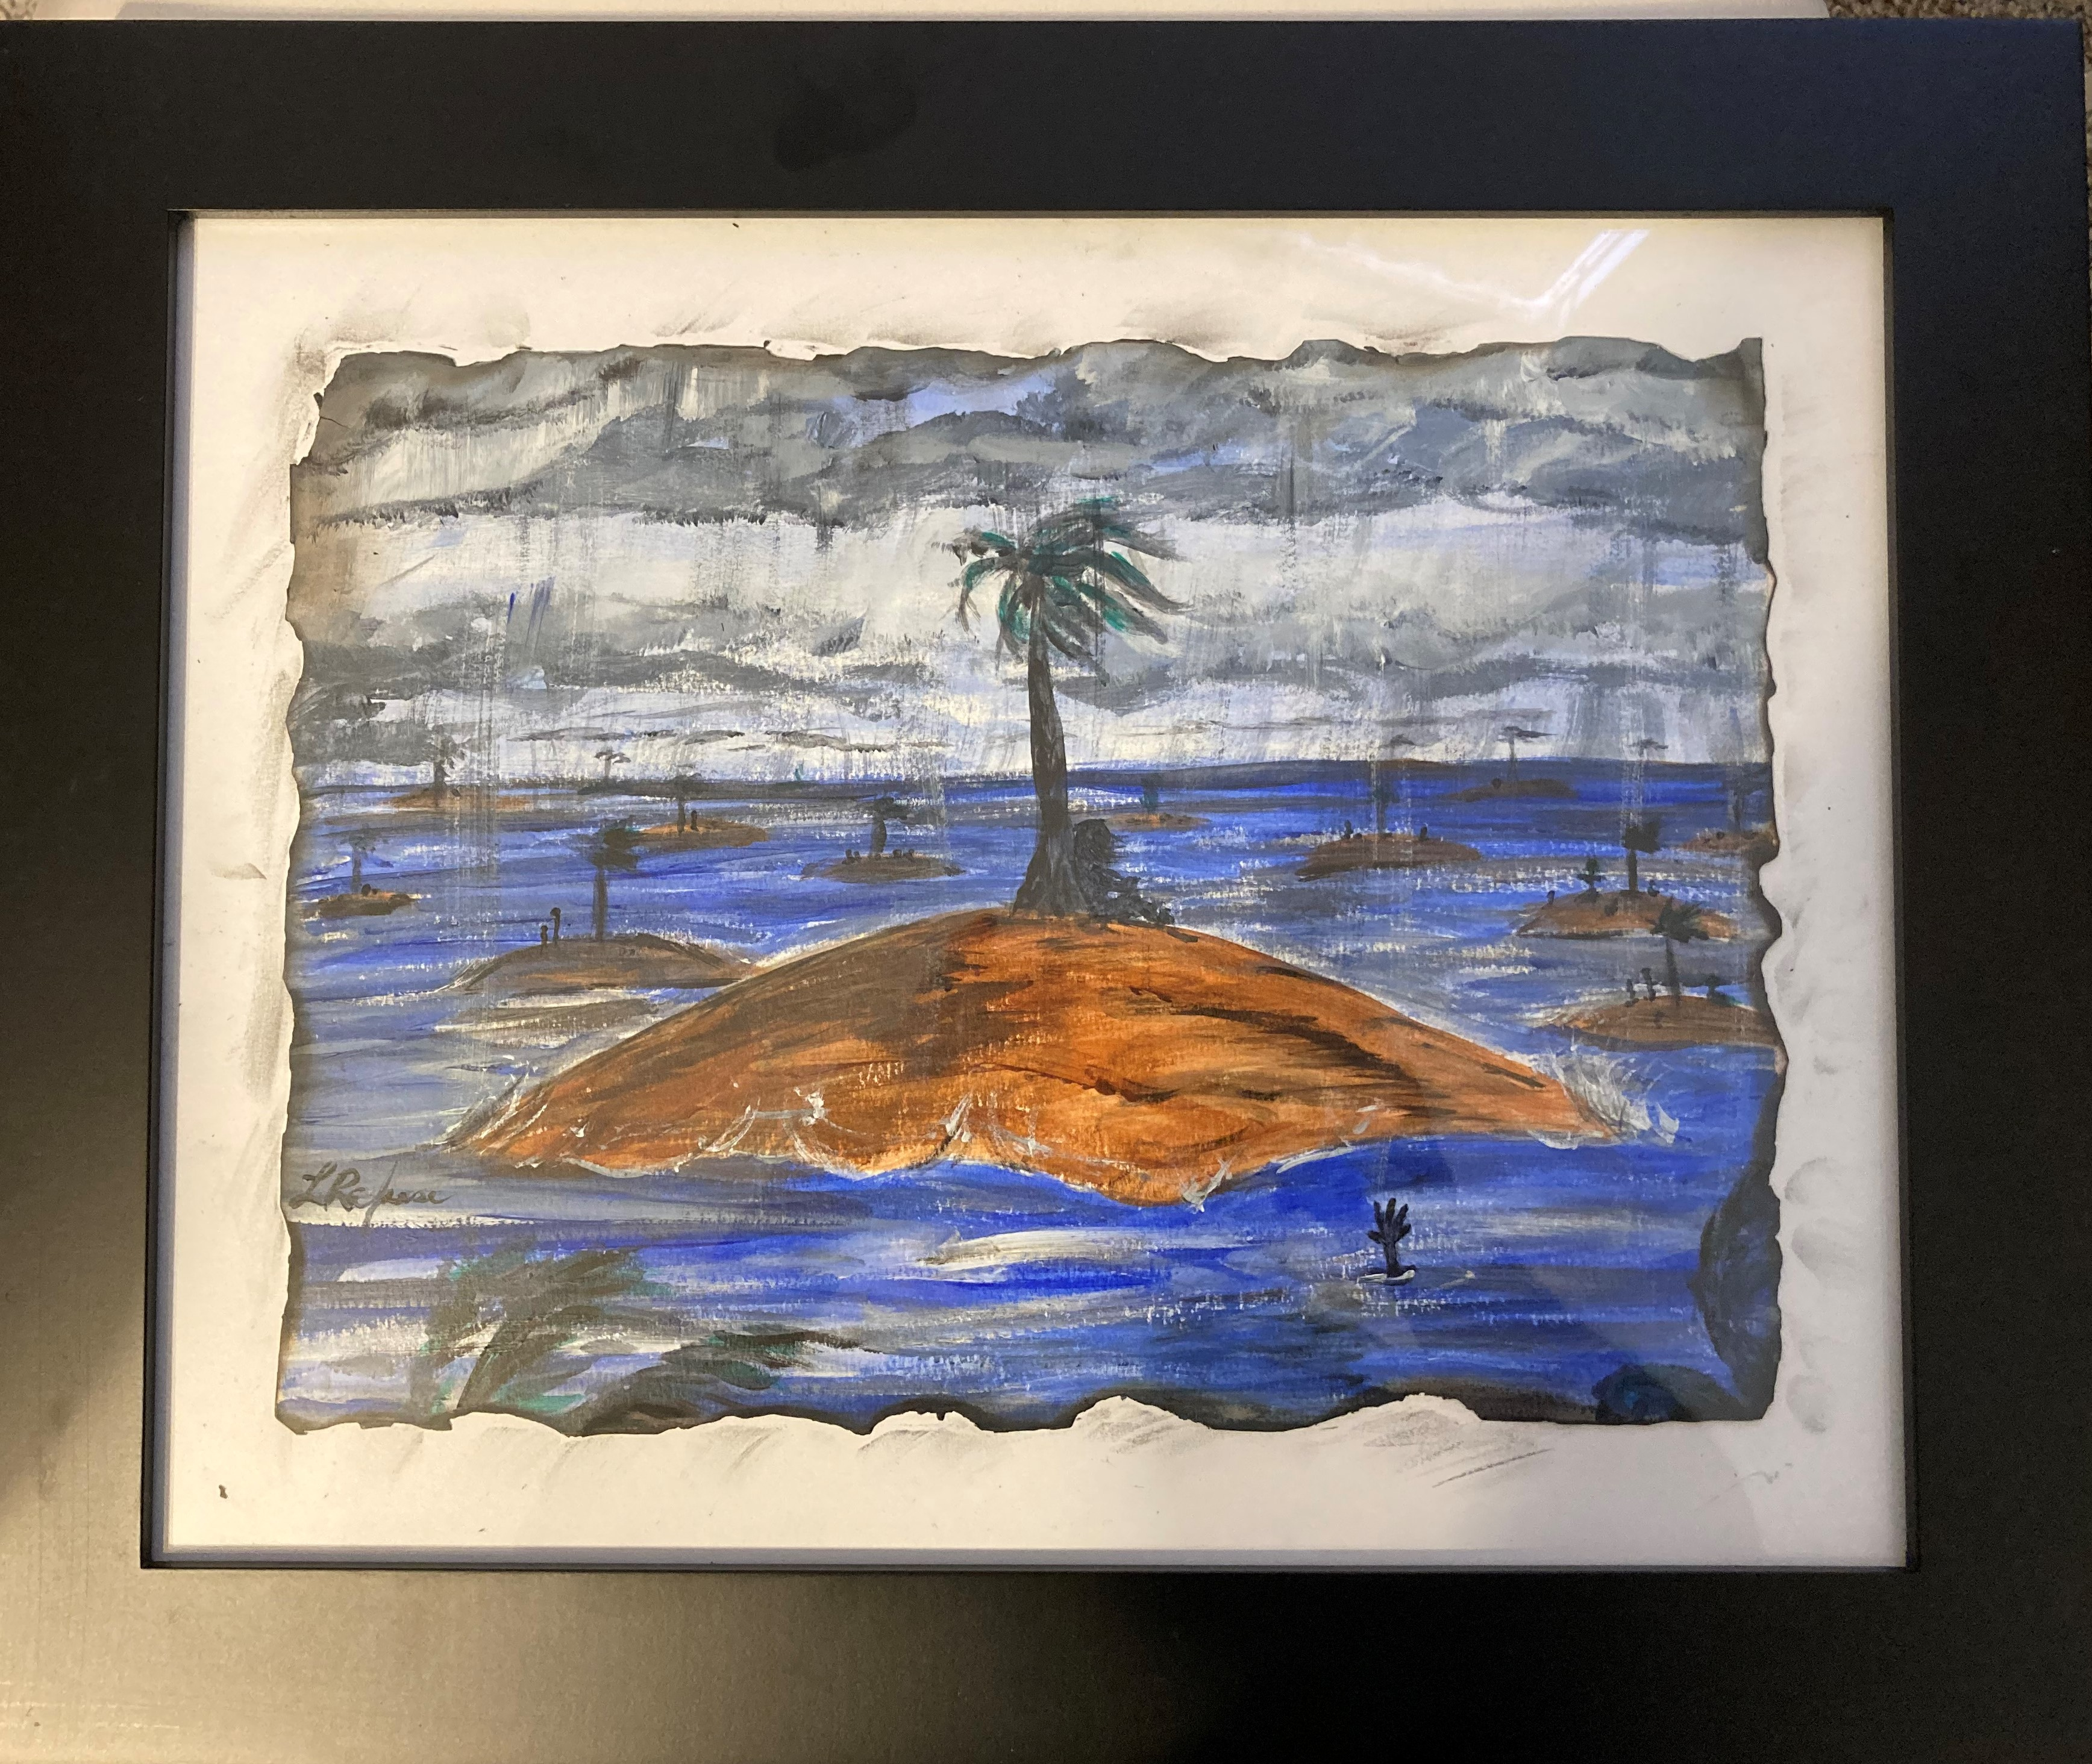 'The Covid Storm', acrylic by Linda Rafuse ($60) ⎼ ' On our lonely islands in the storm of Covid. Some suffering together as families some alone. Suicides increased due to restrictions and social distancing.'